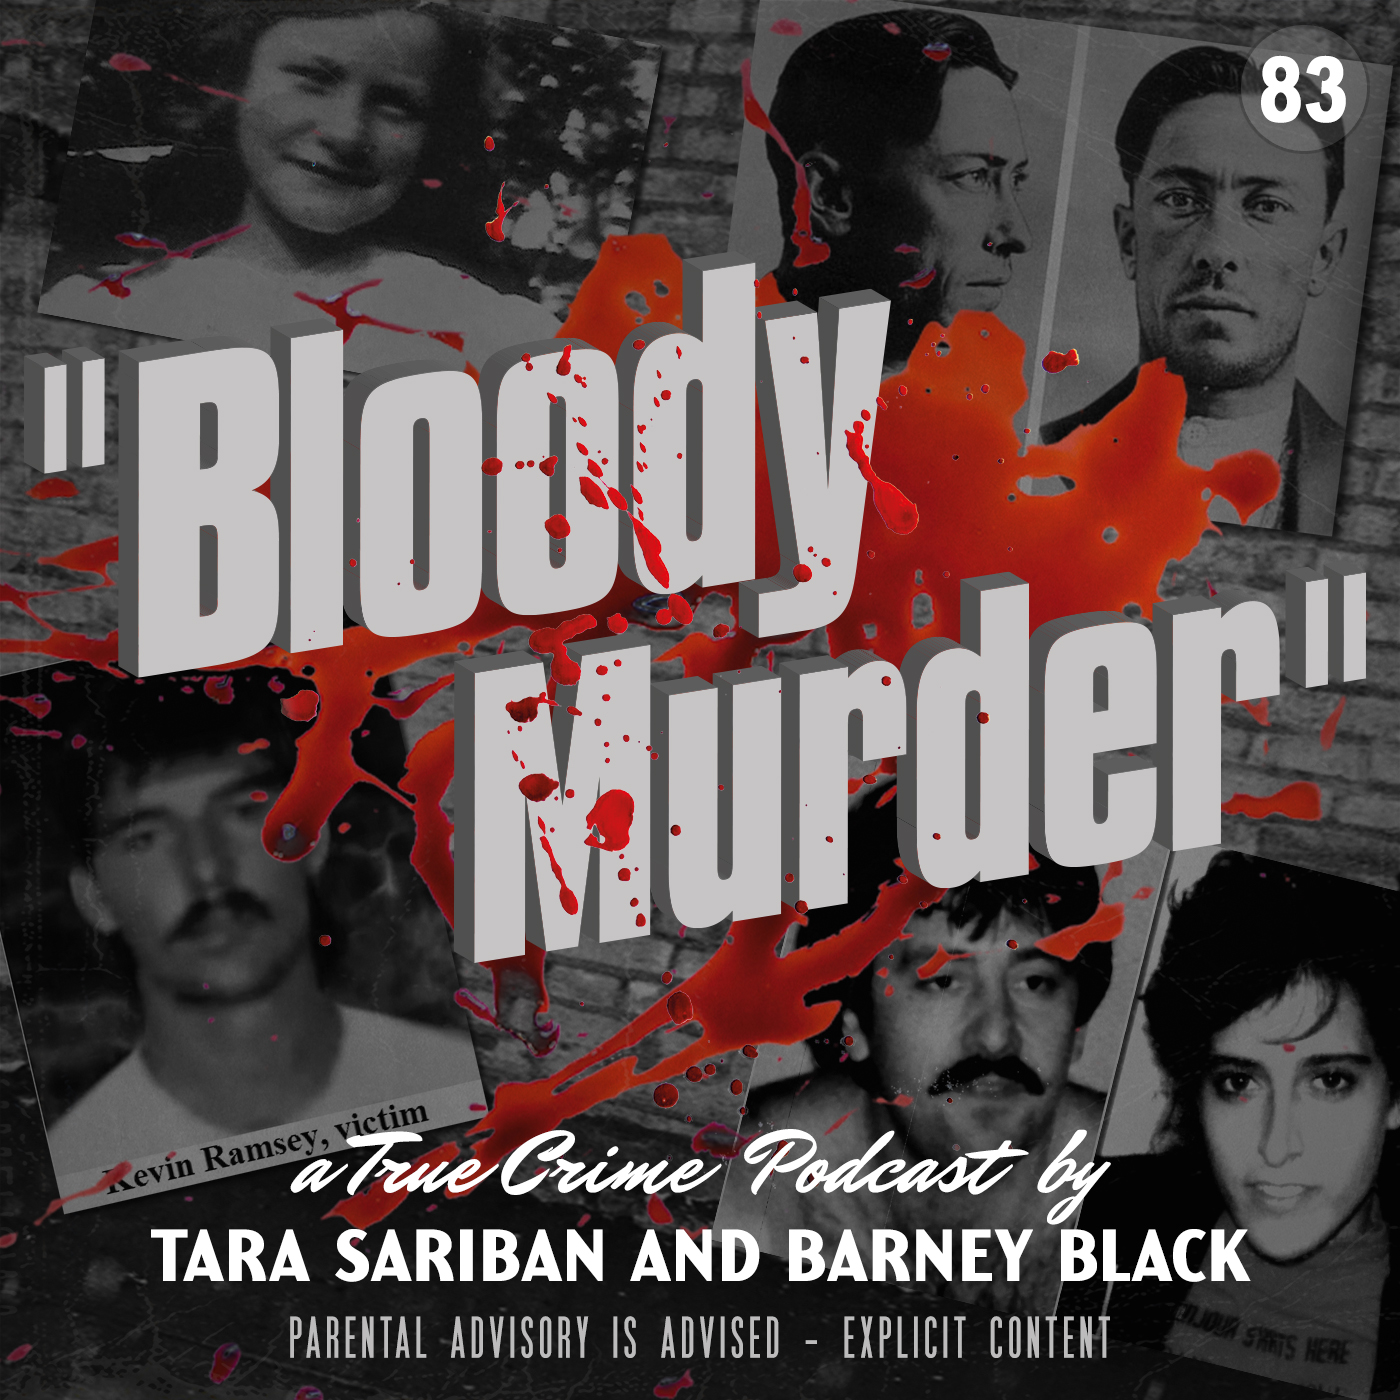 83 - The Hunter Killer Club and The Gun Alley Murder of 1921